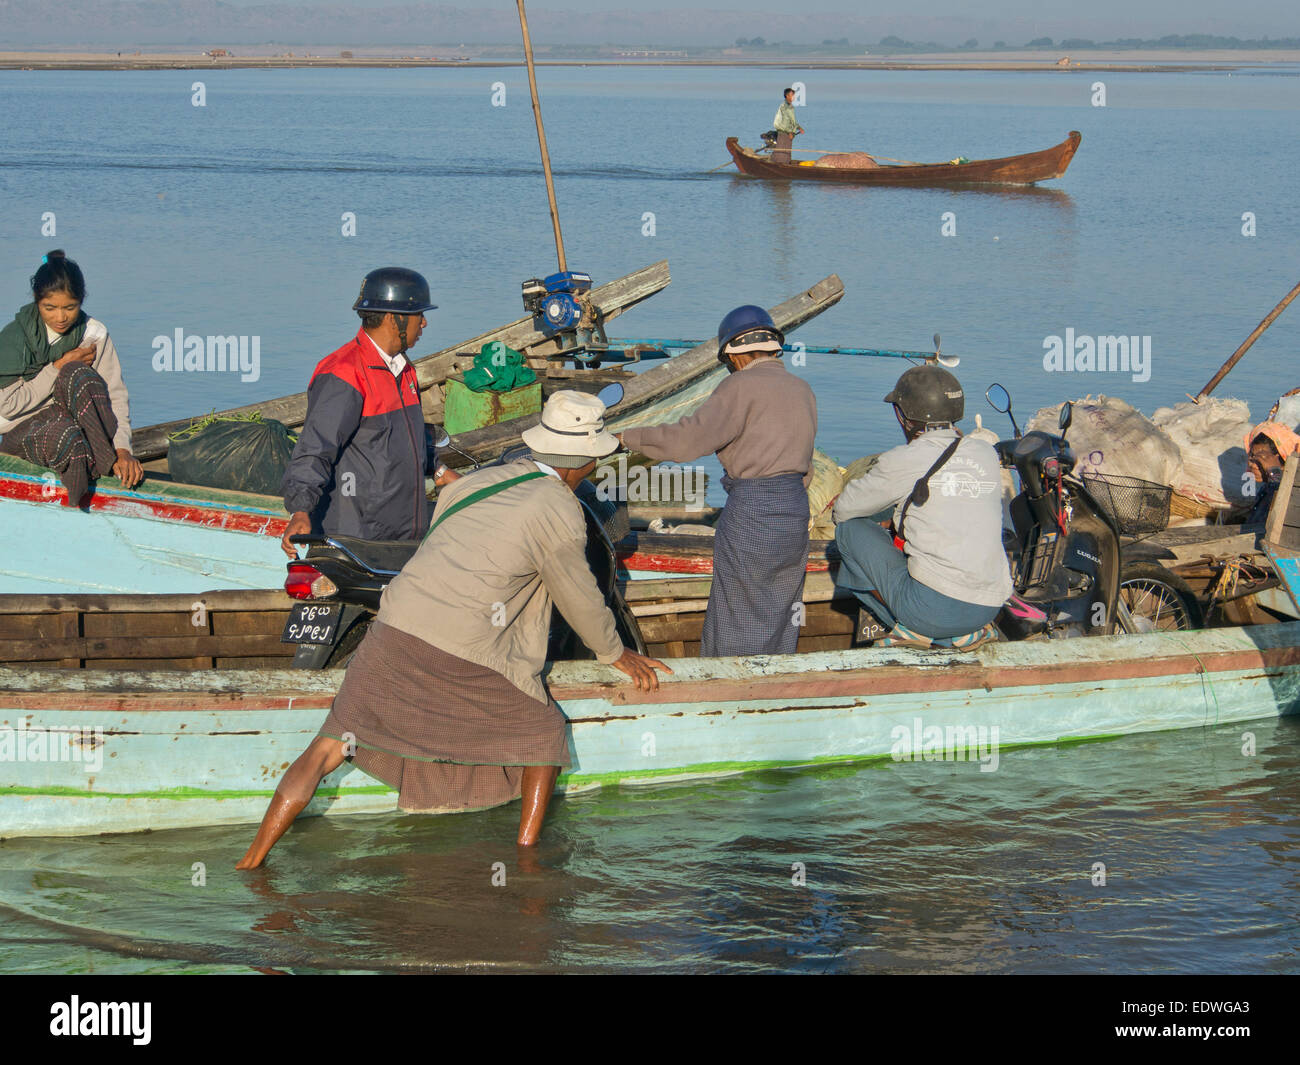 Boatmen by the Irrawaddy river loading and unloading goods and passengers, Myanmar - Stock Image